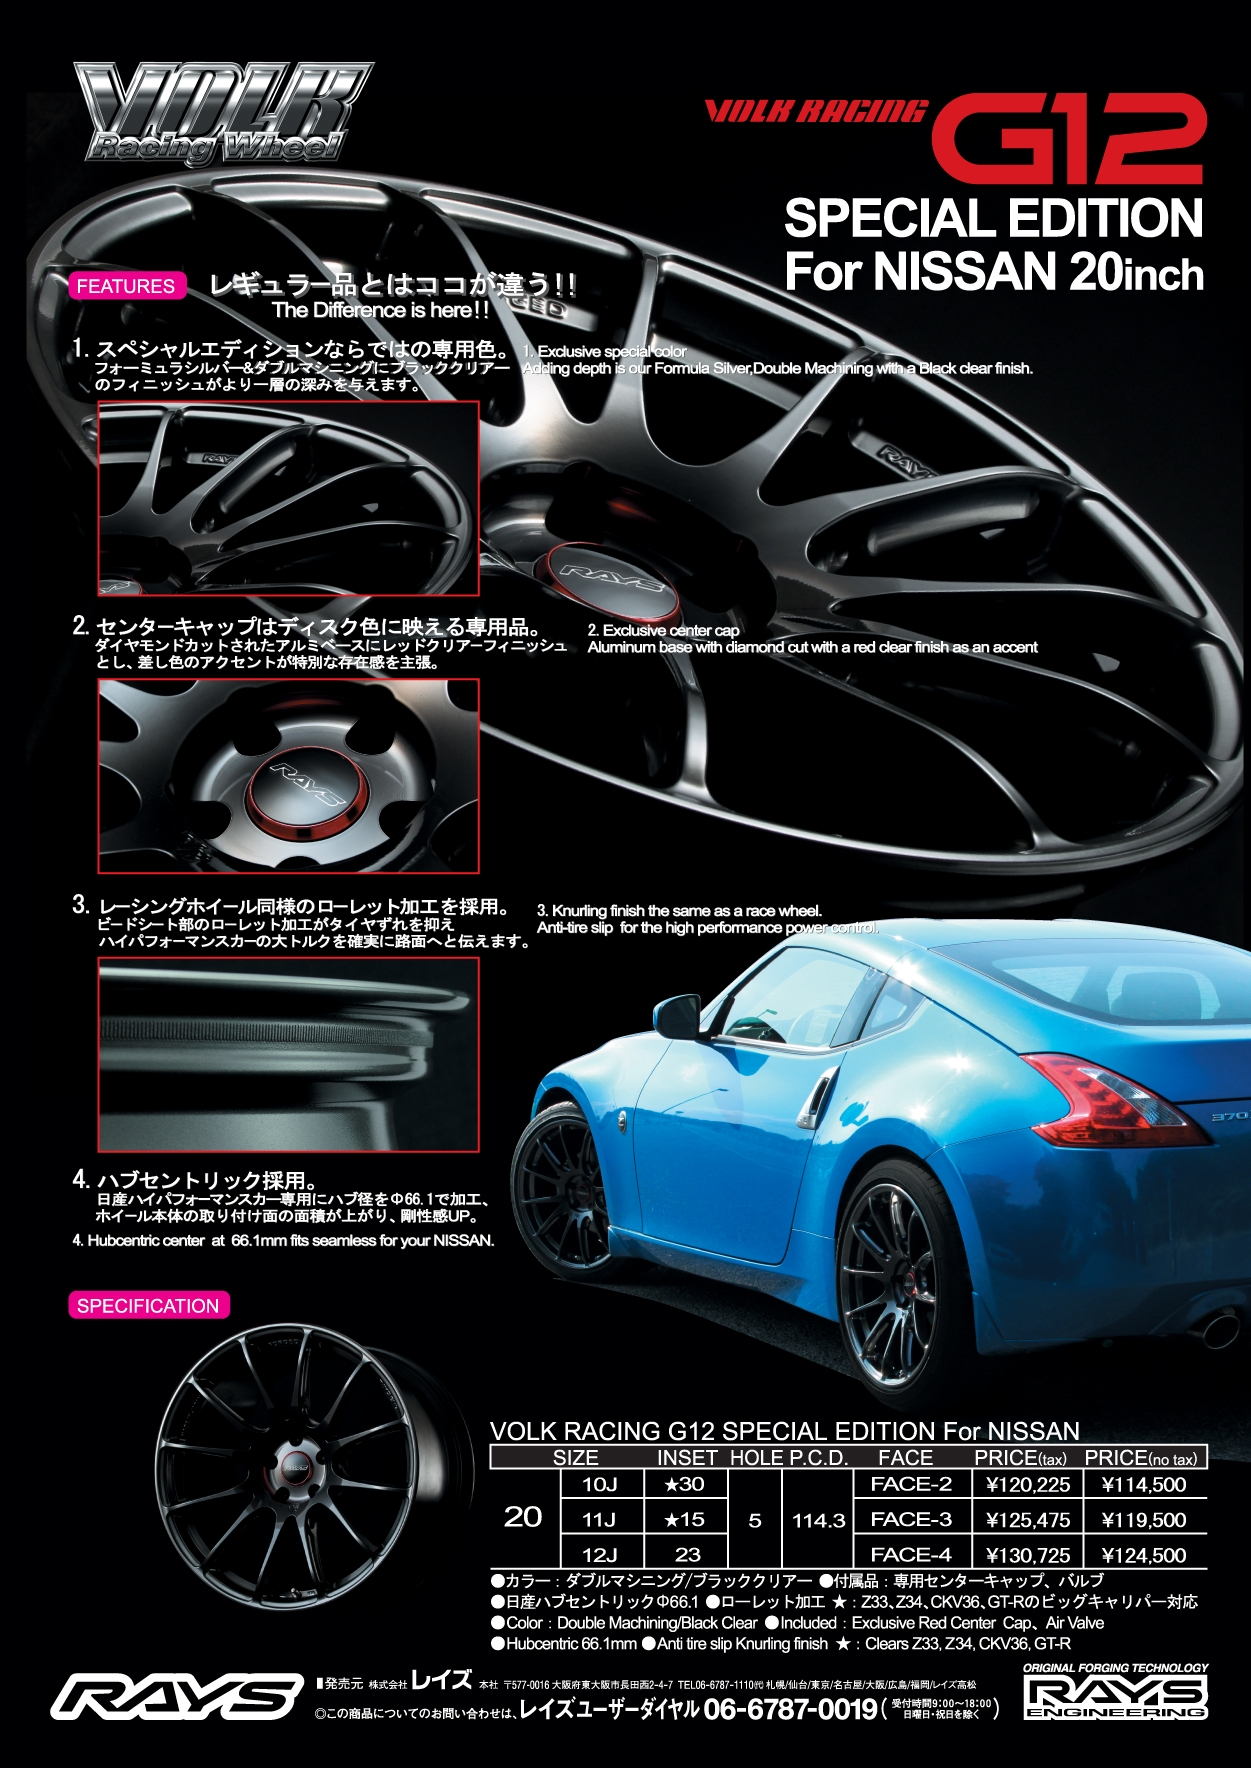 Volk Racing G12 for Nissan LIMITED EDITION